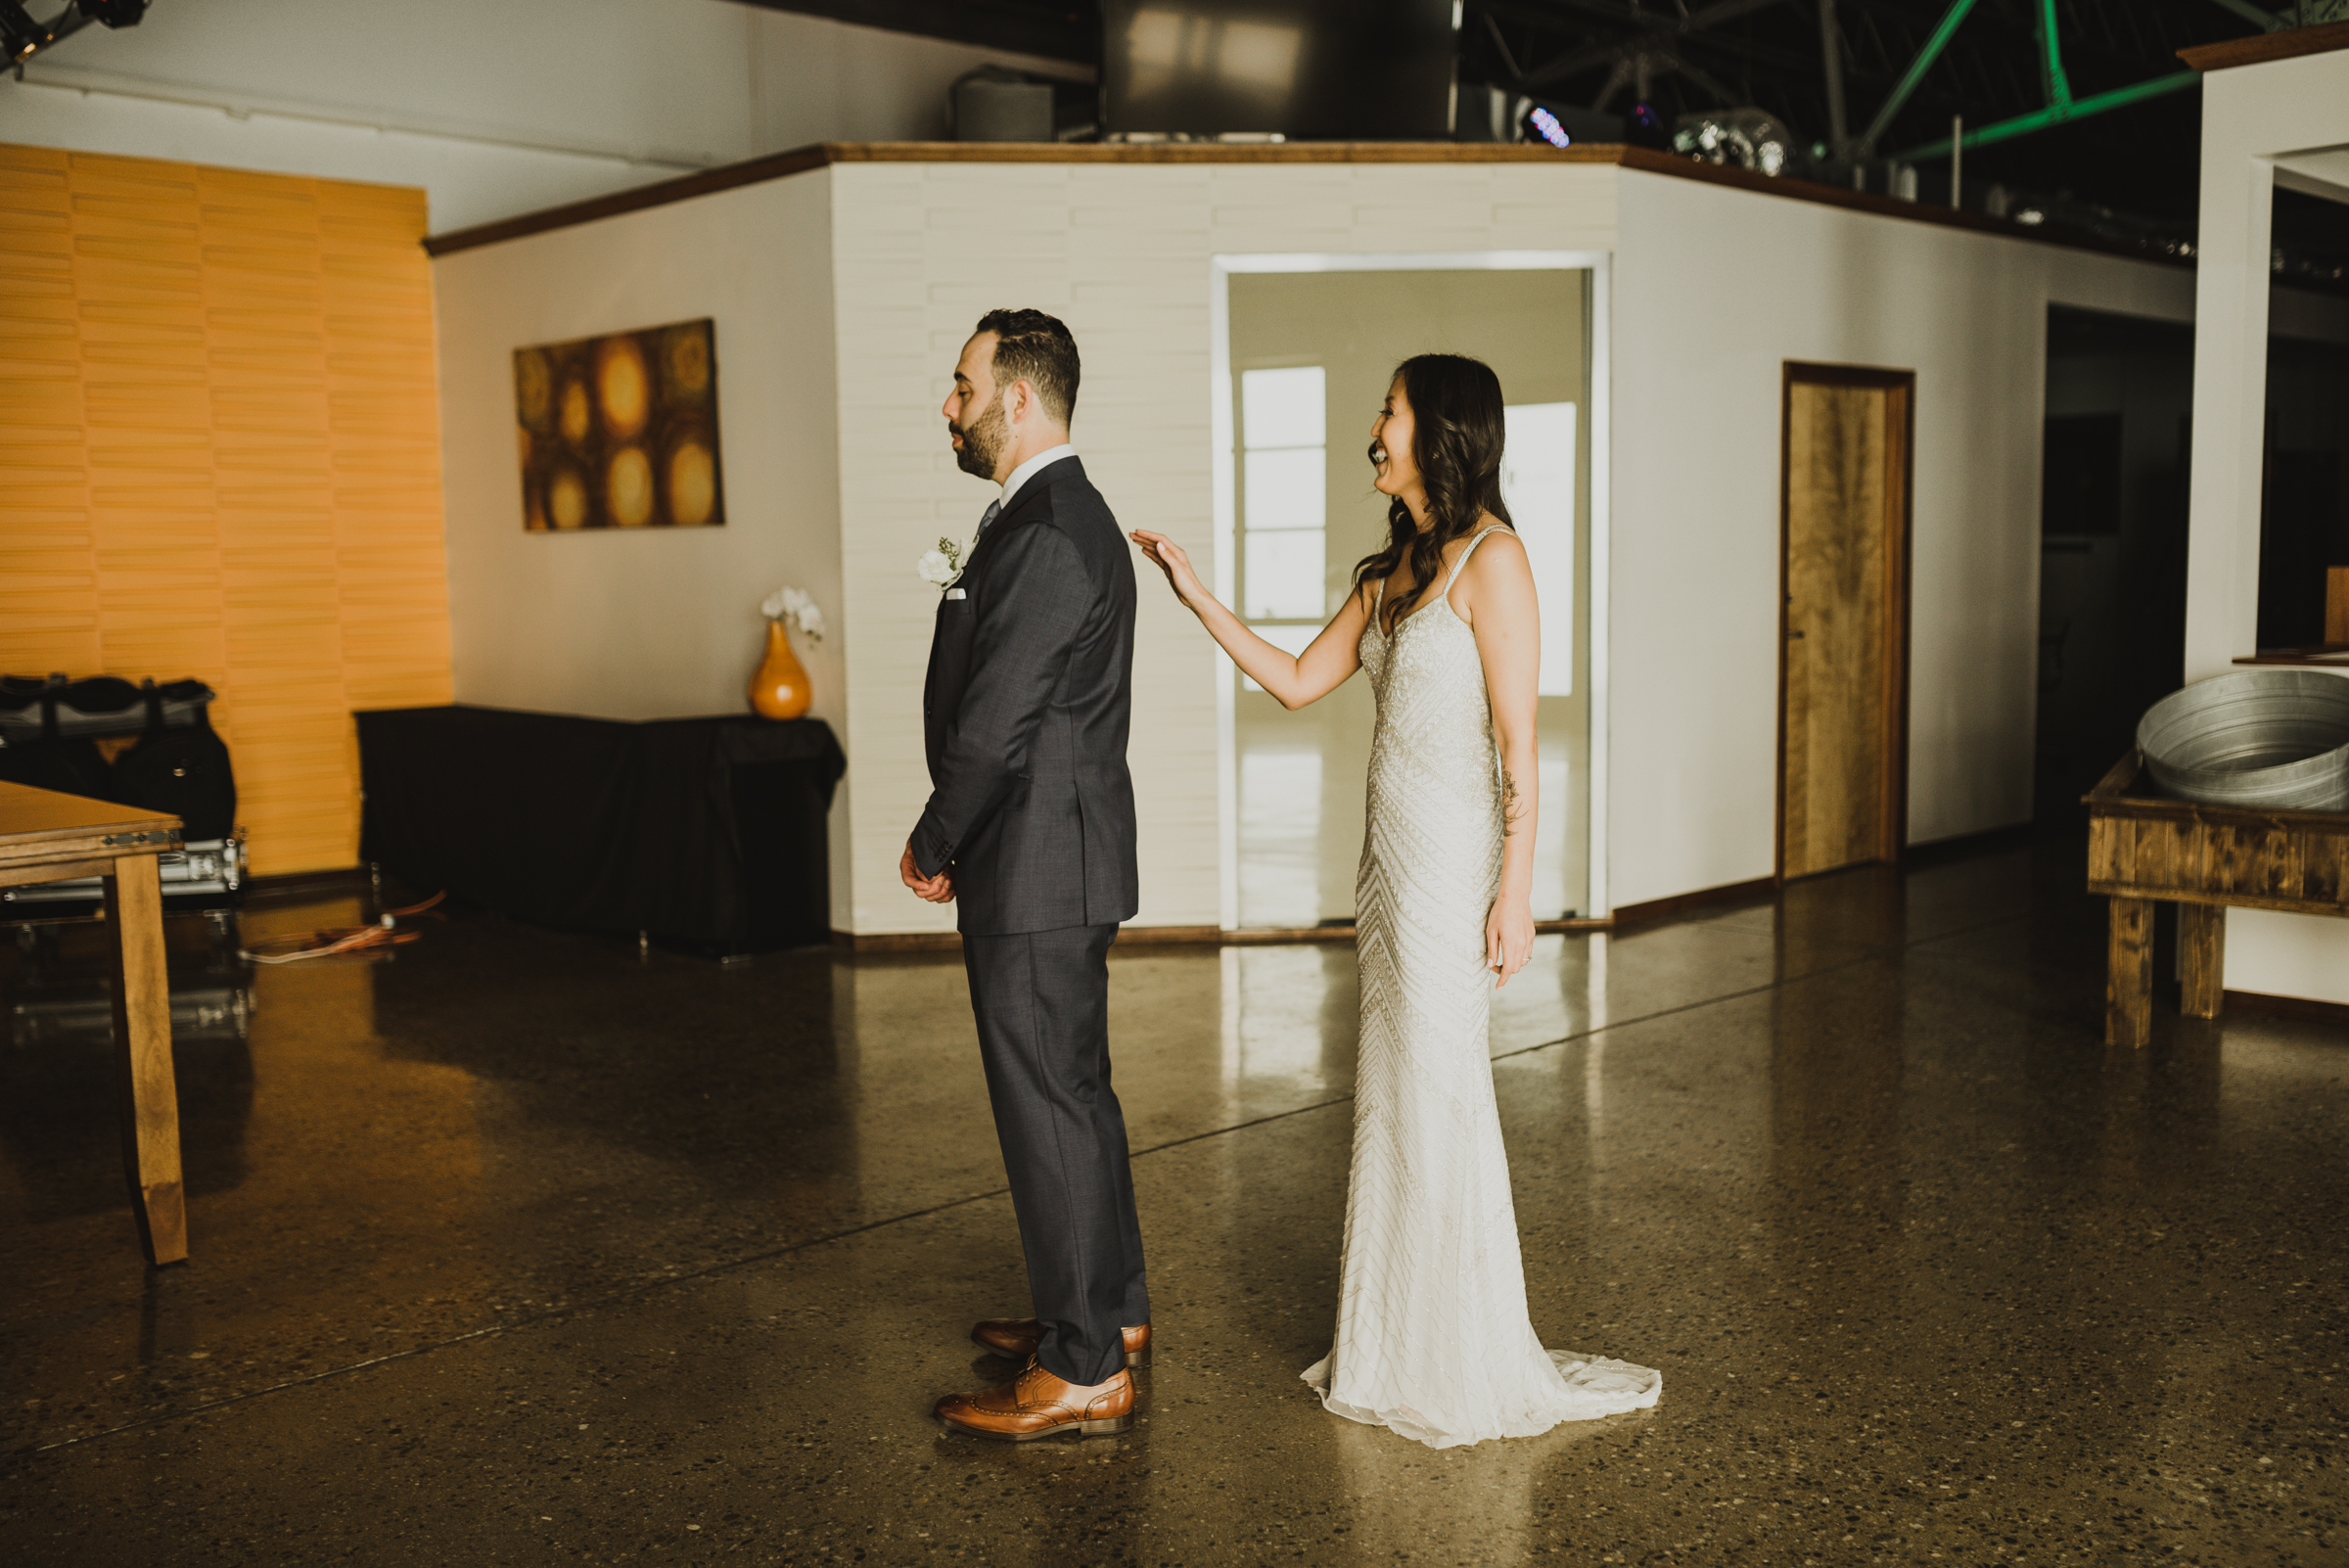 ©Isaiah + Taylor Photography - Big Door Studios Wedding, El Segundo, Los Angeles Wedding Photographer-22.jpg